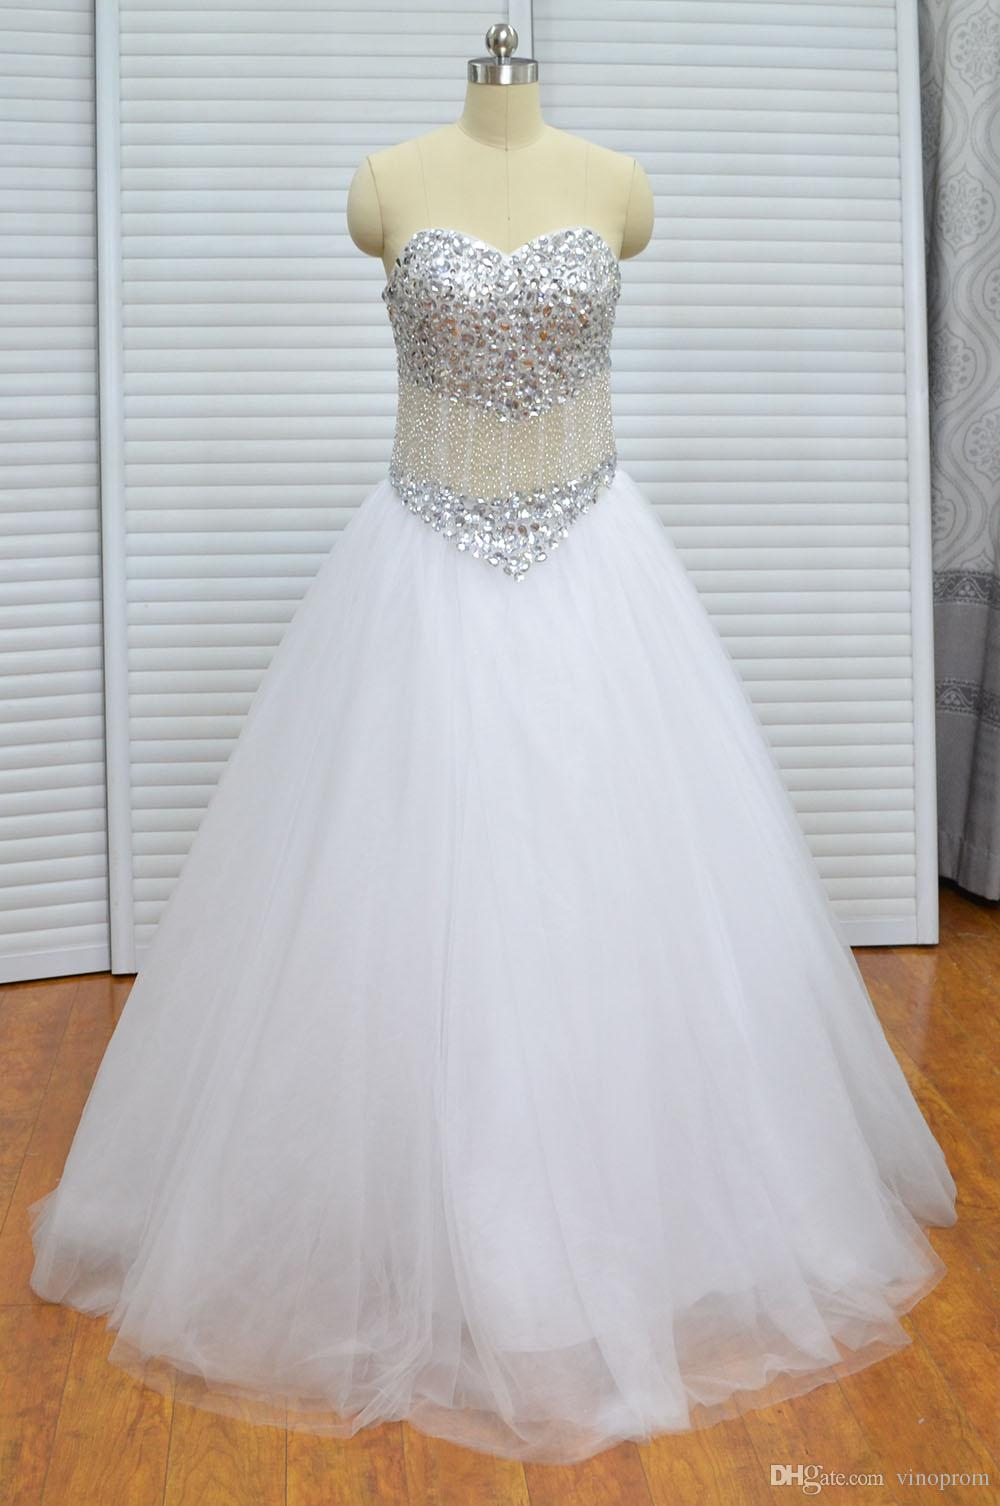 Vinoprom Real Photo A-line Sweetheart Women Lace White Beaded Floor Length Wedding Dress Bridal Gown 2018